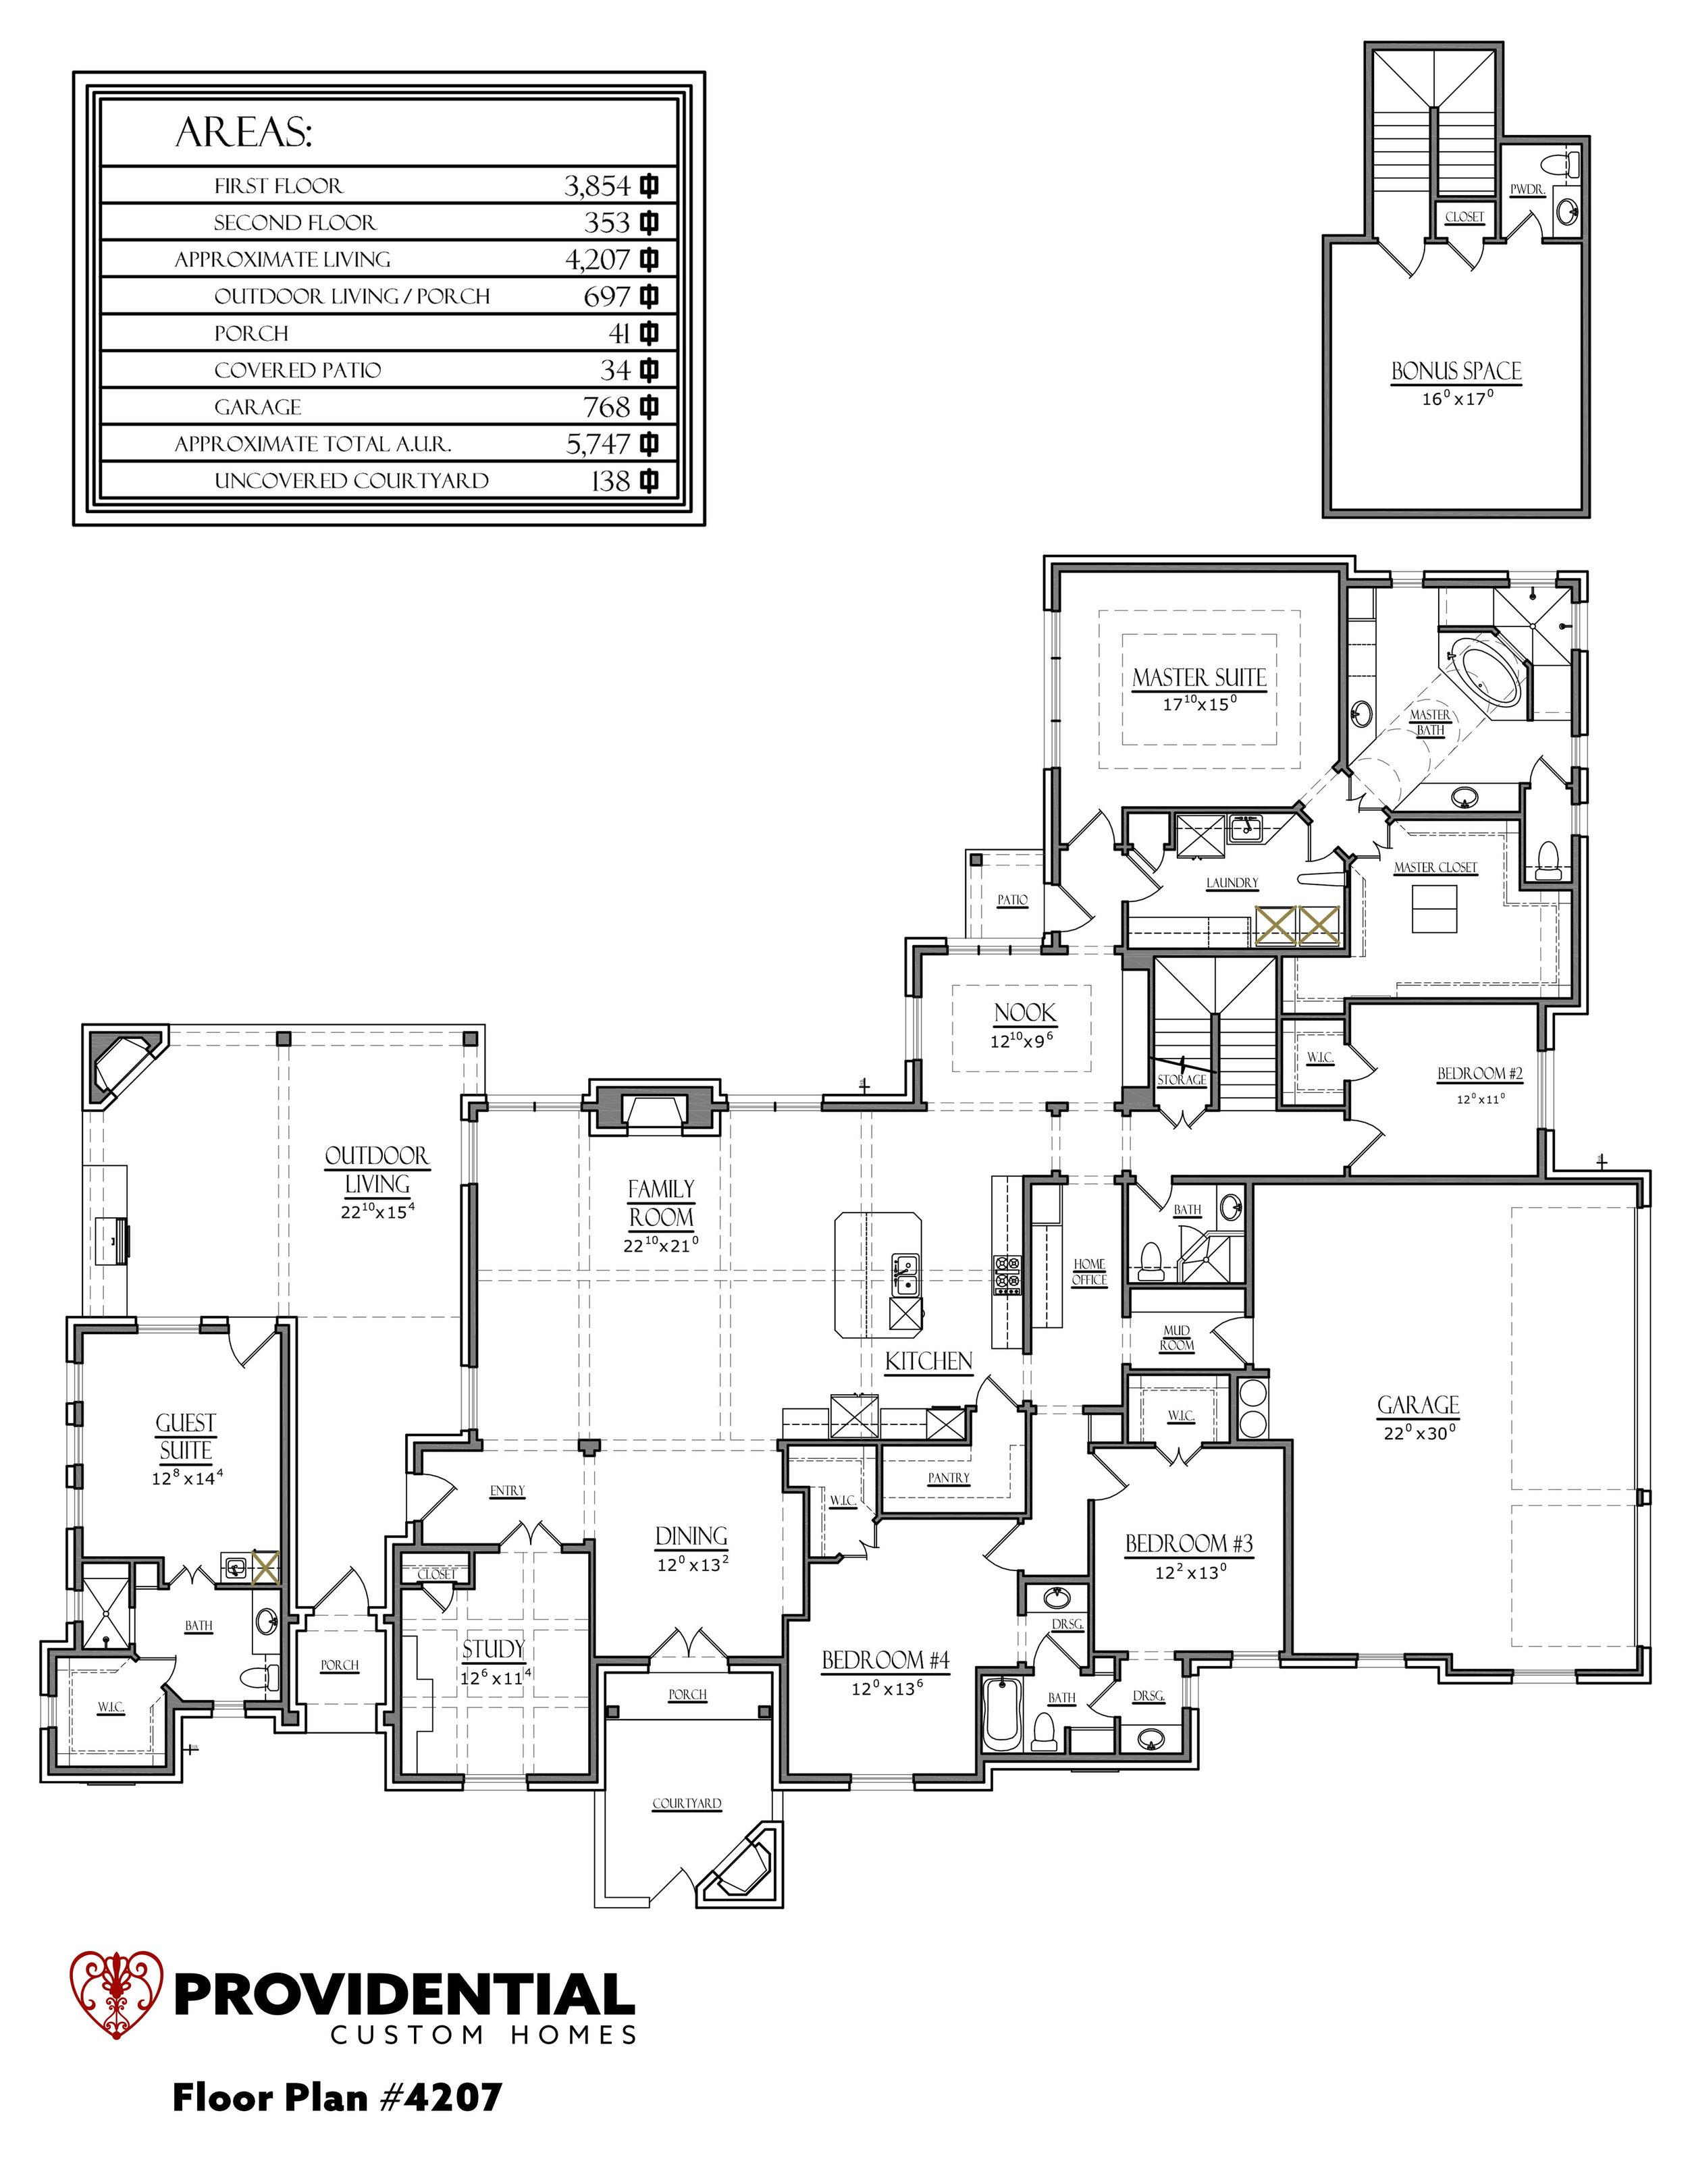 The FLOOR PLAN #4207.jpg